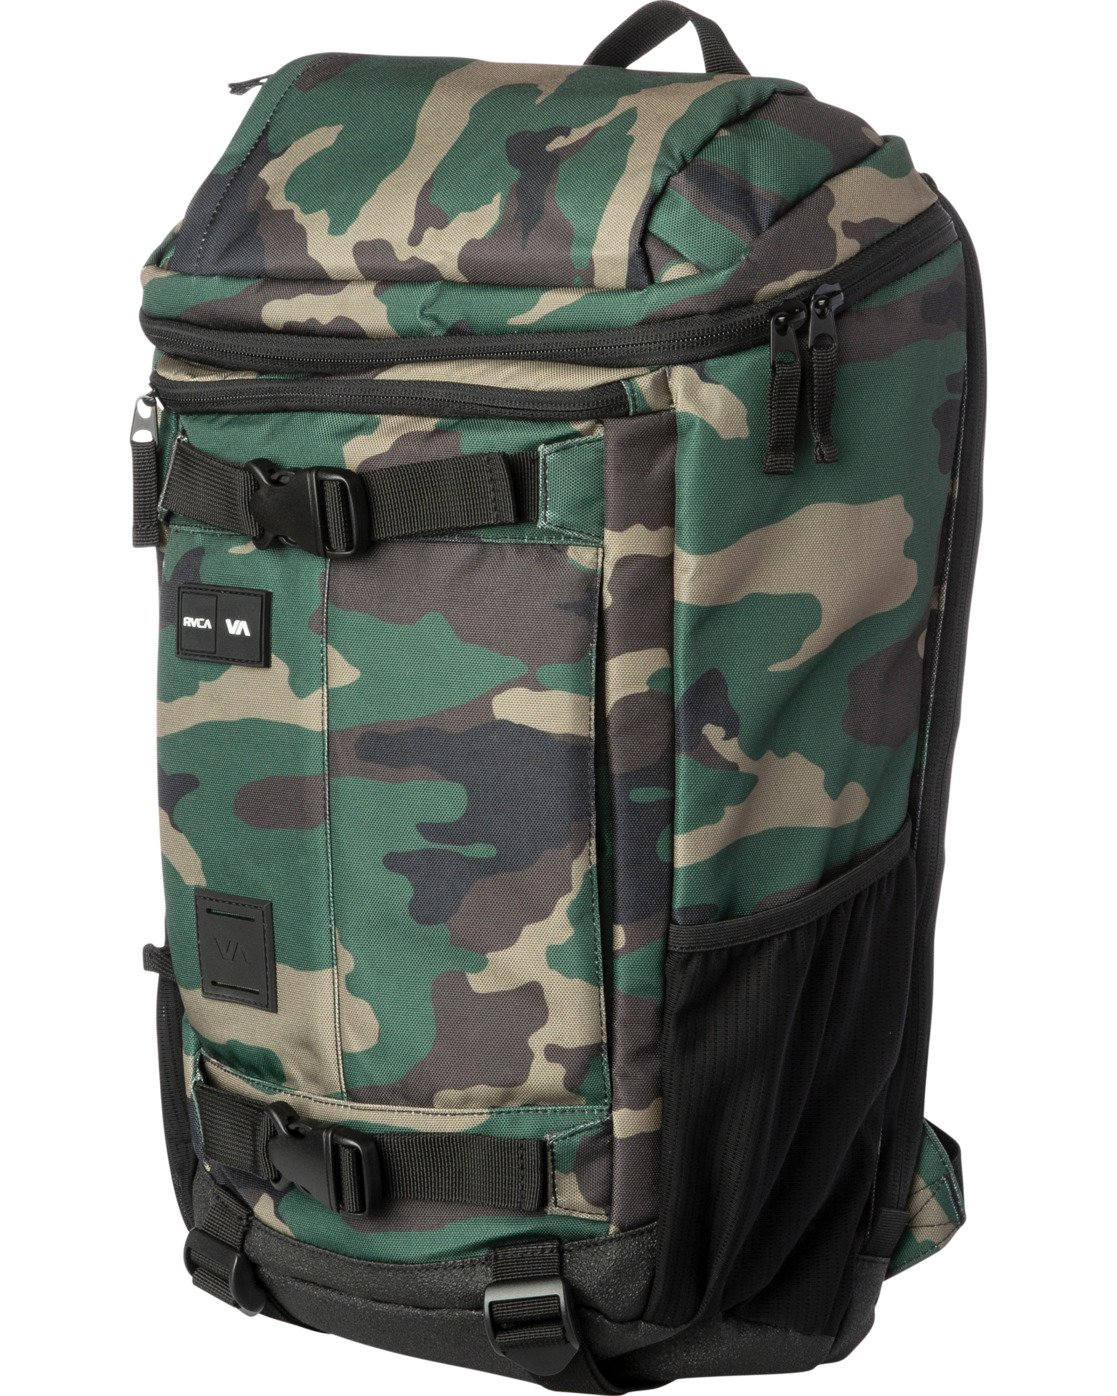 0 VOYAGE III BACKPACK Brown MABK2RVB RVCA